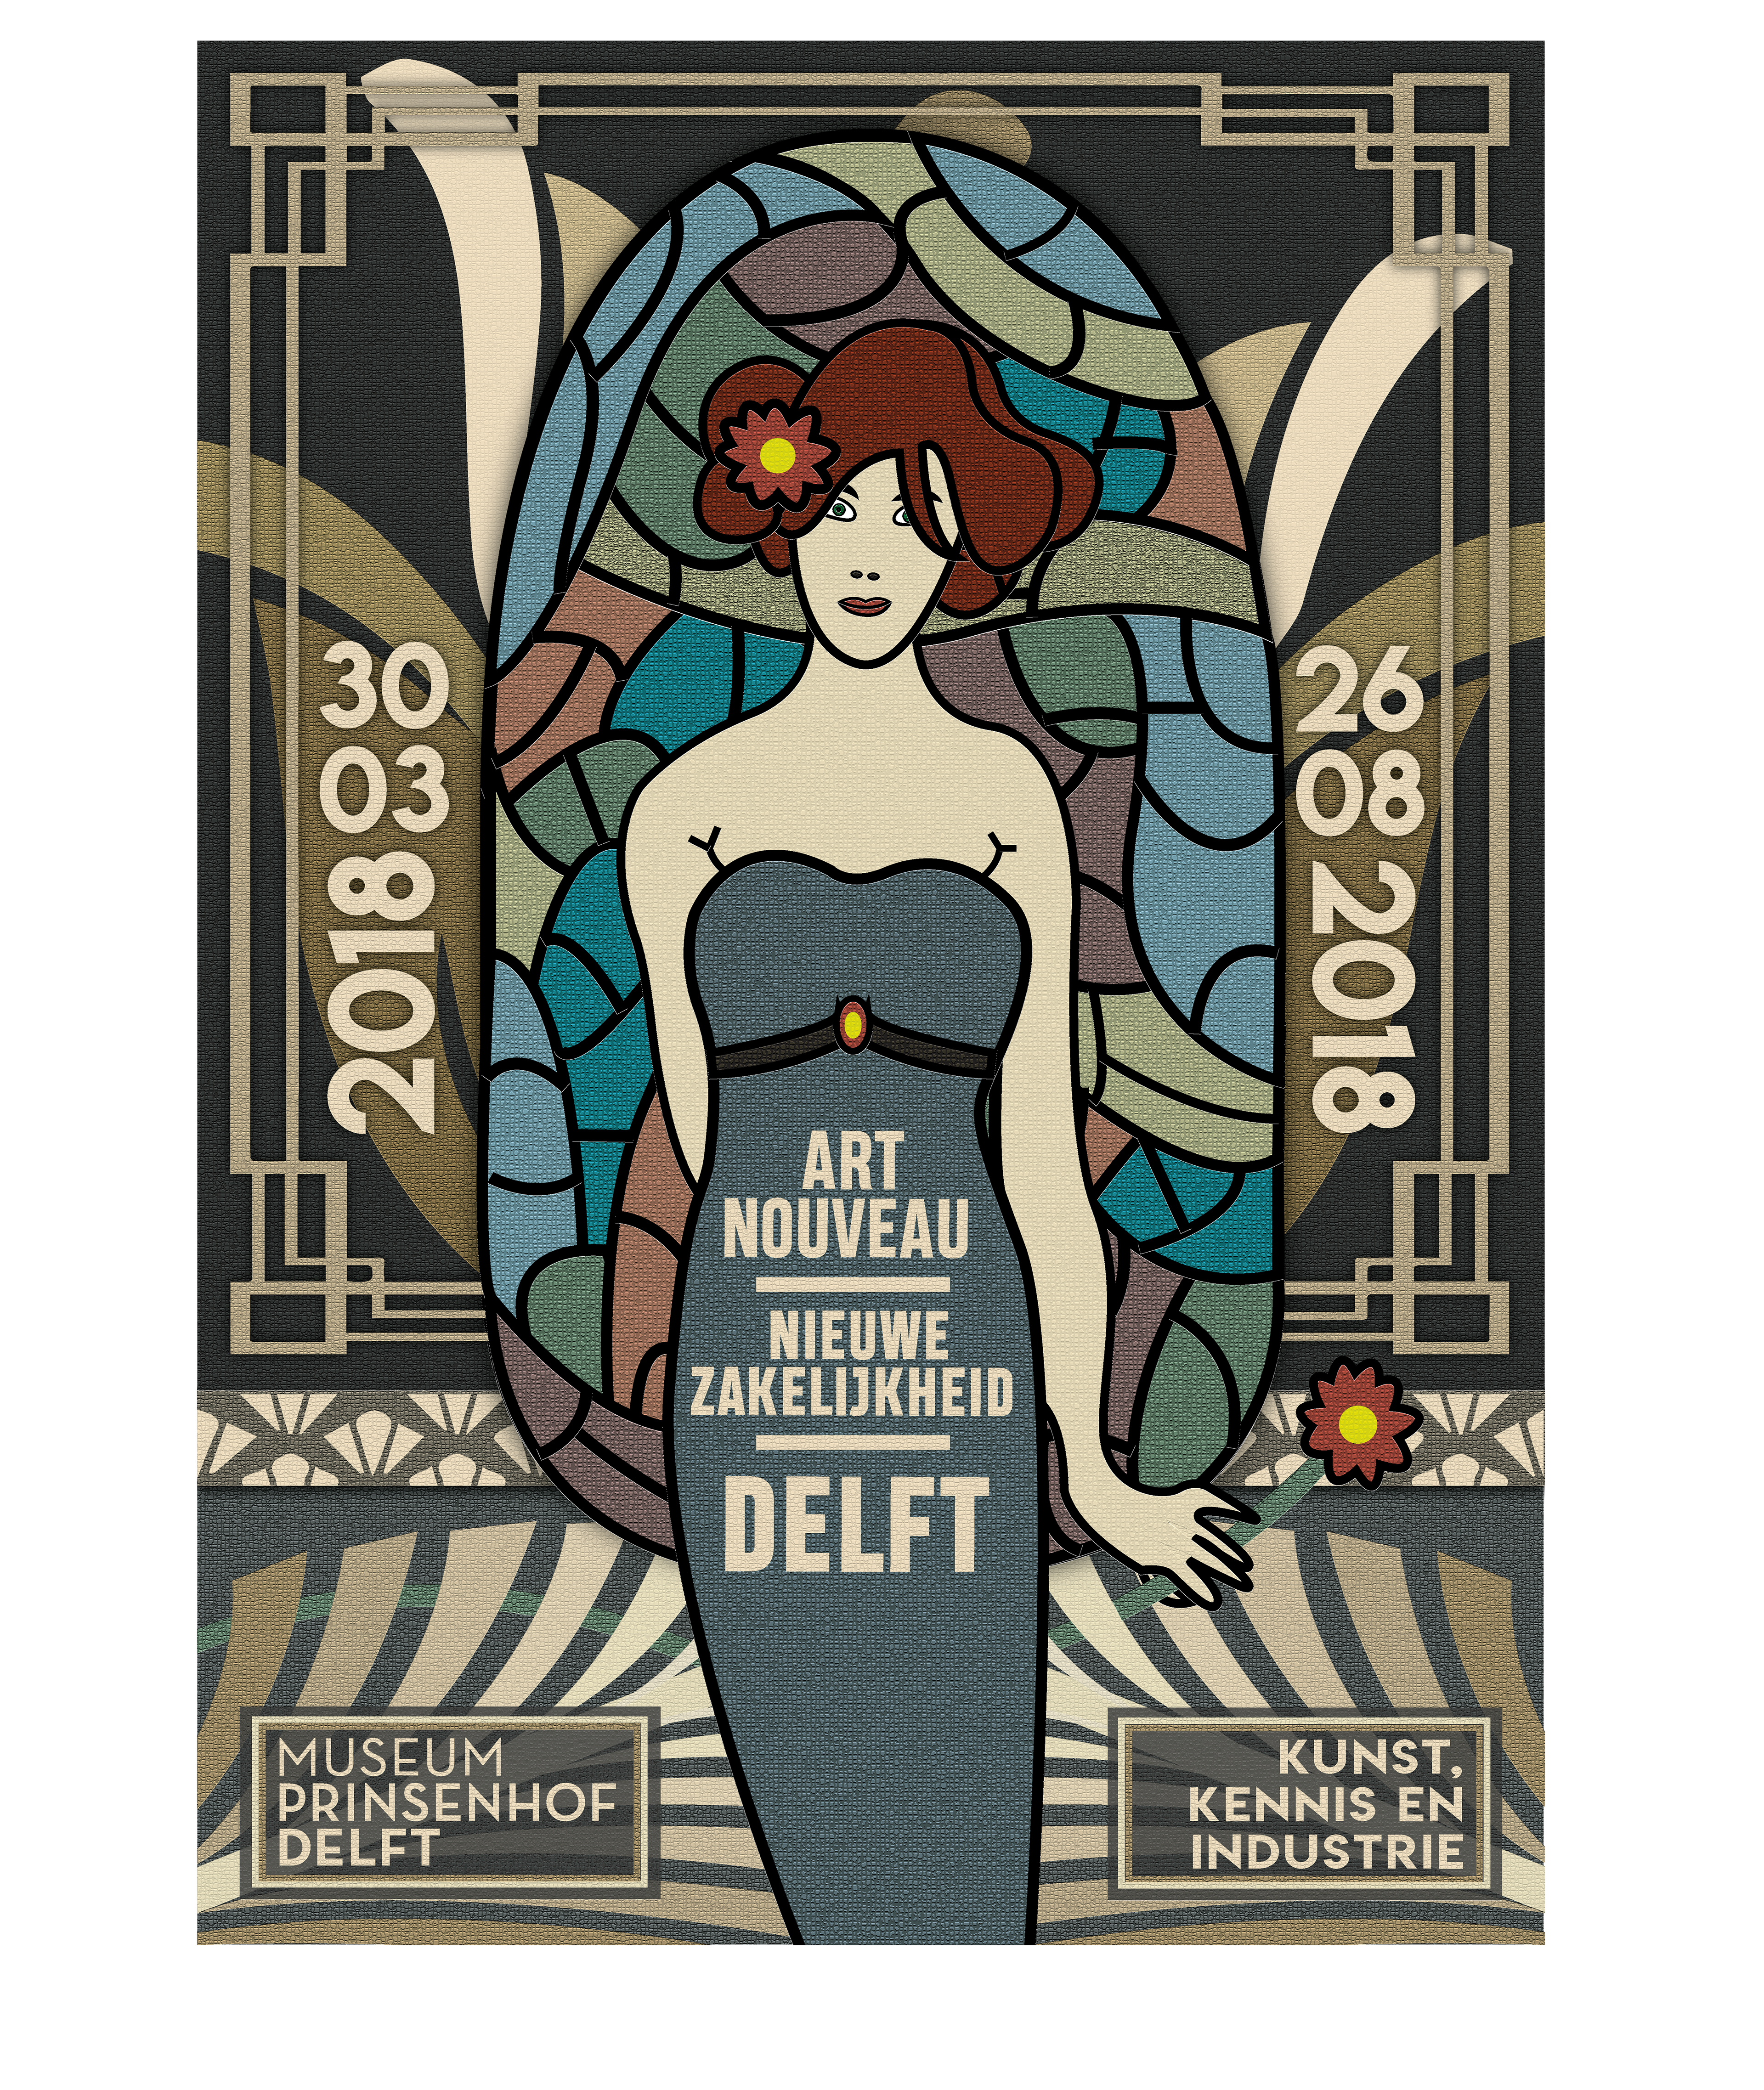 Victor hurks museumposter ive made a woman in art nouveau style with stained glass behind her and several objects from the art deco era like the gold lotus flower the frame izmirmasajfo